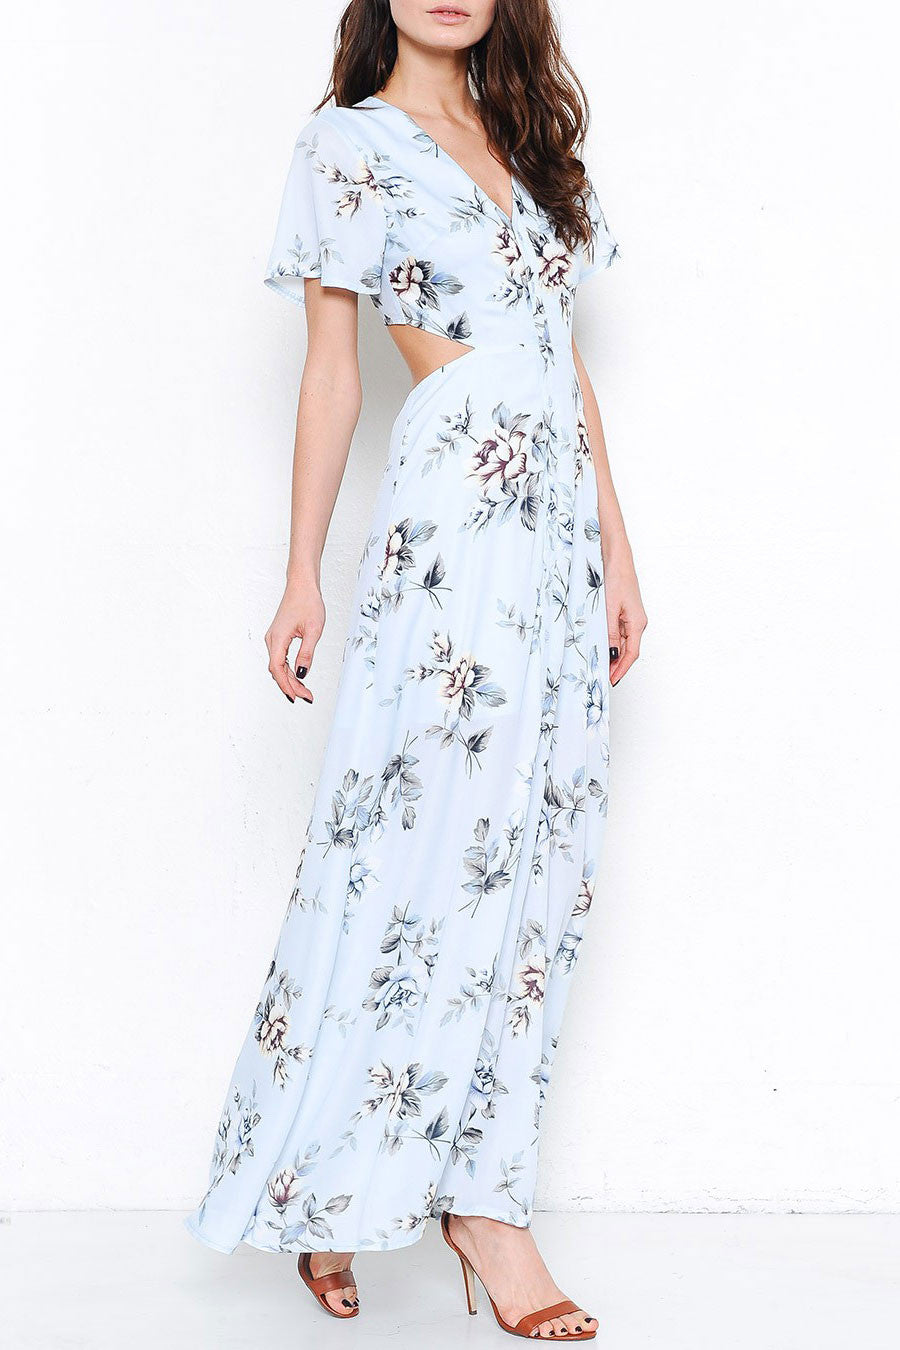 Blue and white maxi dress with short sleeve